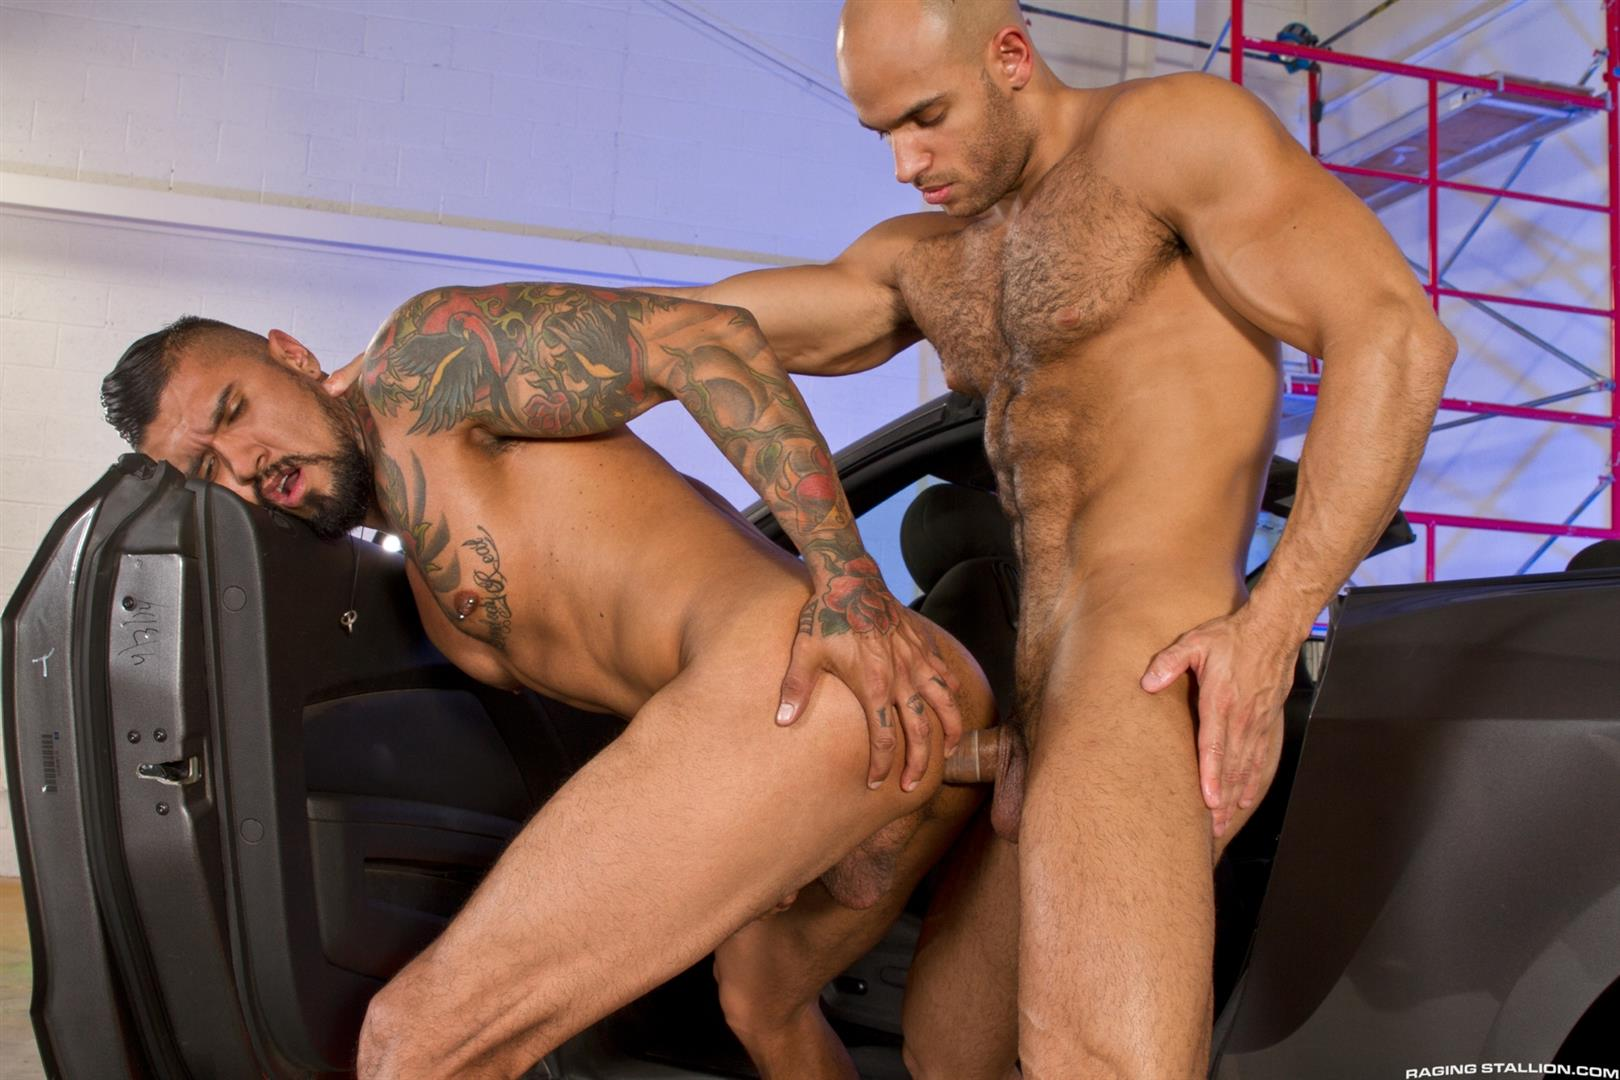 Raging Stallion Sean Zevran and Boomer Banks Bottoms For The First Time Big Uncut Cock Amateur Gay Porn 09 BREAKING NEWS: Boomer Banks Bottoms For The First Time With A Big Uncut Cock